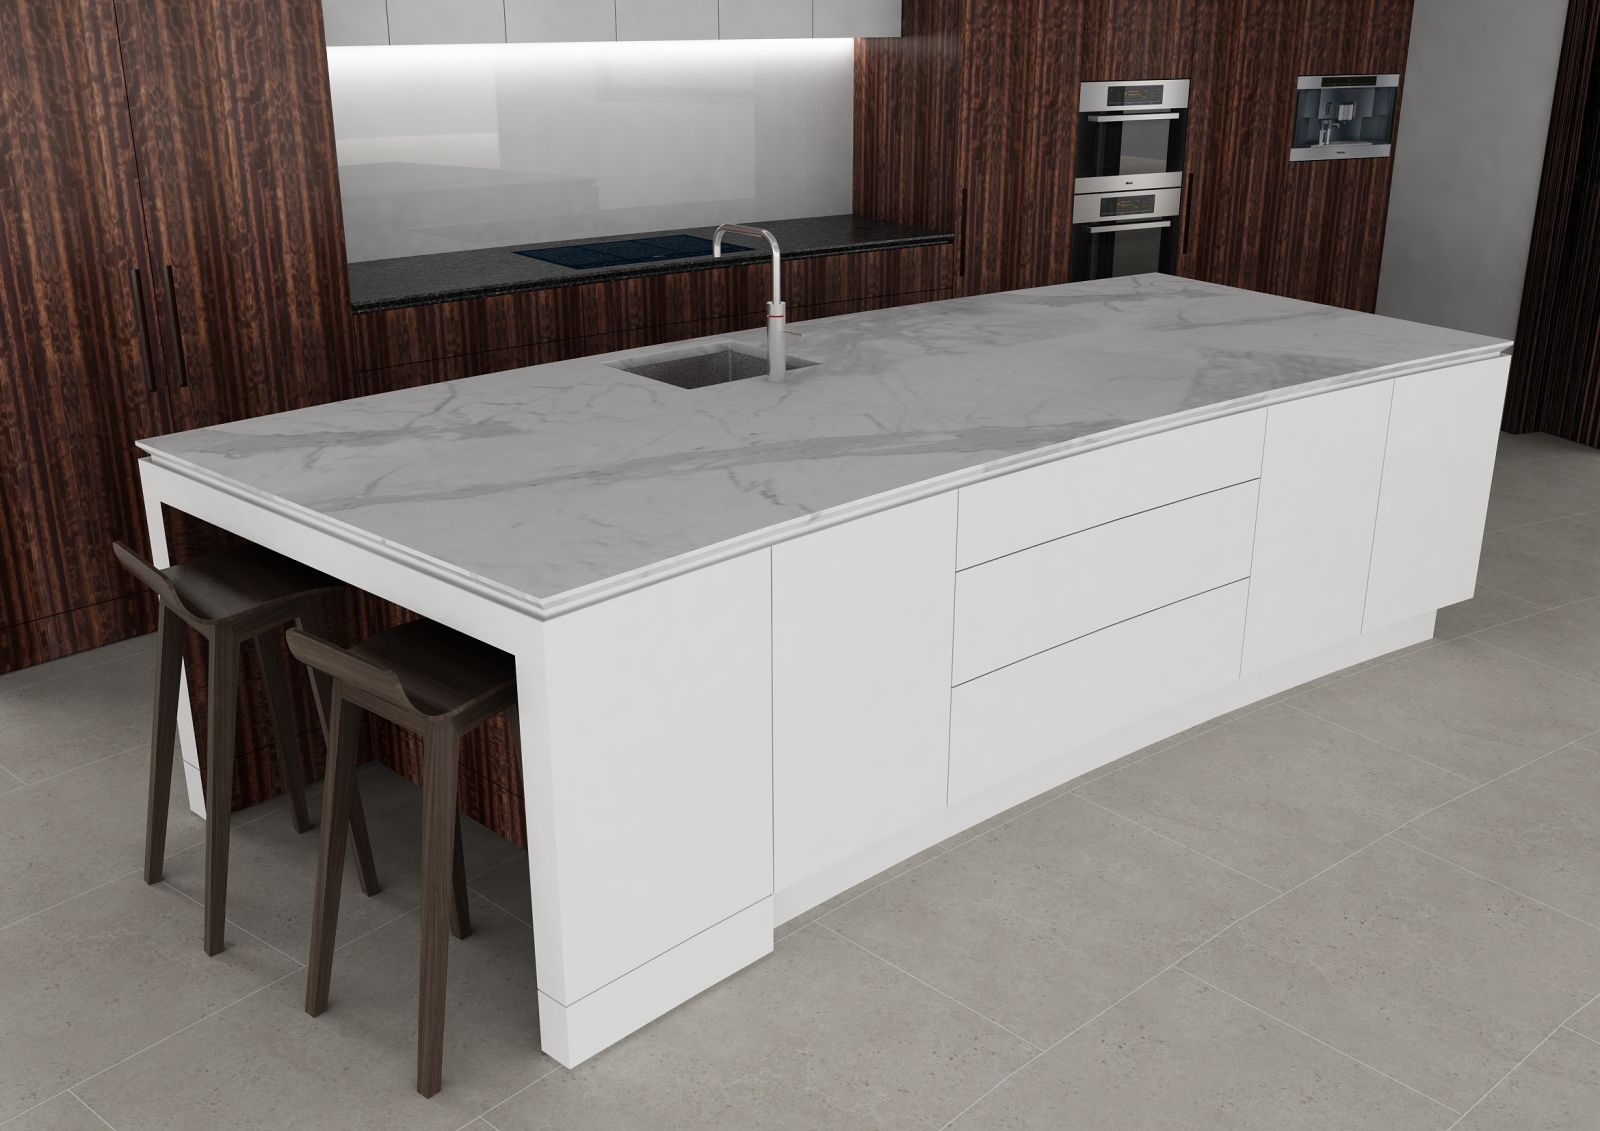 Brammell kitchen V2 - View 5